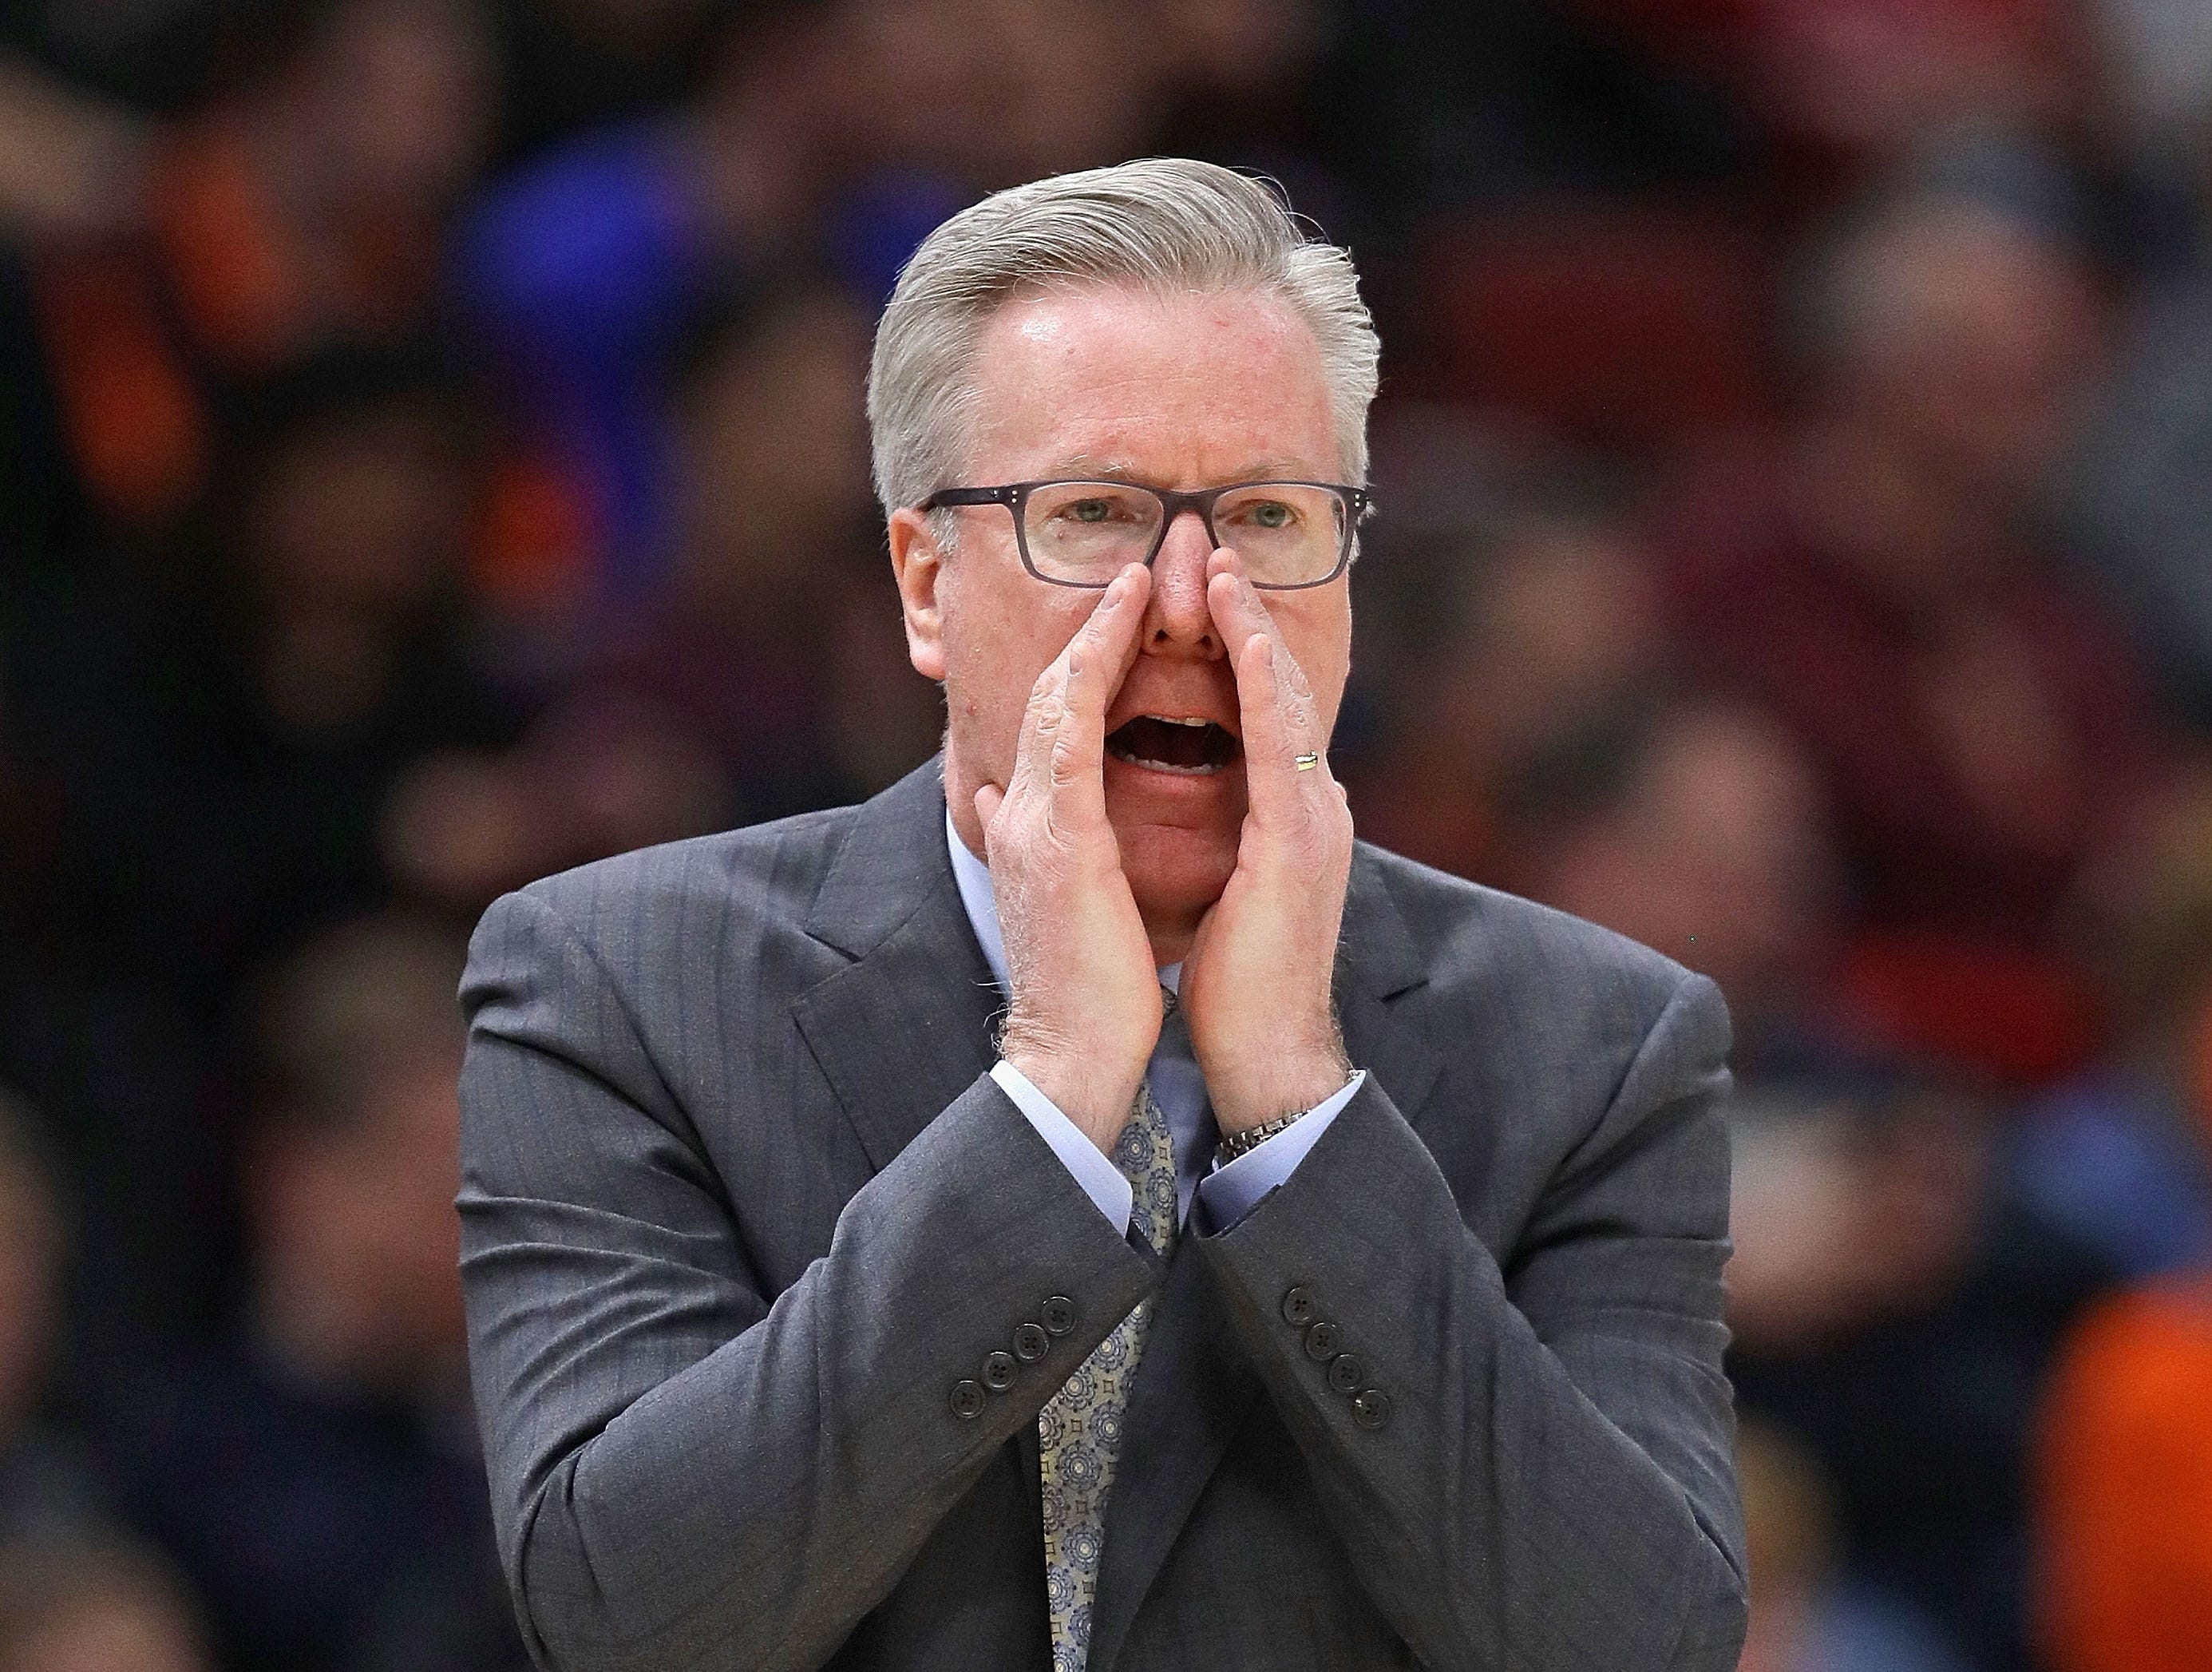 CHICAGO, ILLINOIS - MARCH 14: Head coach Fran McCaffery of the Iowa Hawkeyes gives instructions to his team against the Illinois Fighting Illini at the United Center on March 14, 2019 in Chicago, Illinois.  (Photo by Jonathan Daniel/Getty Images)